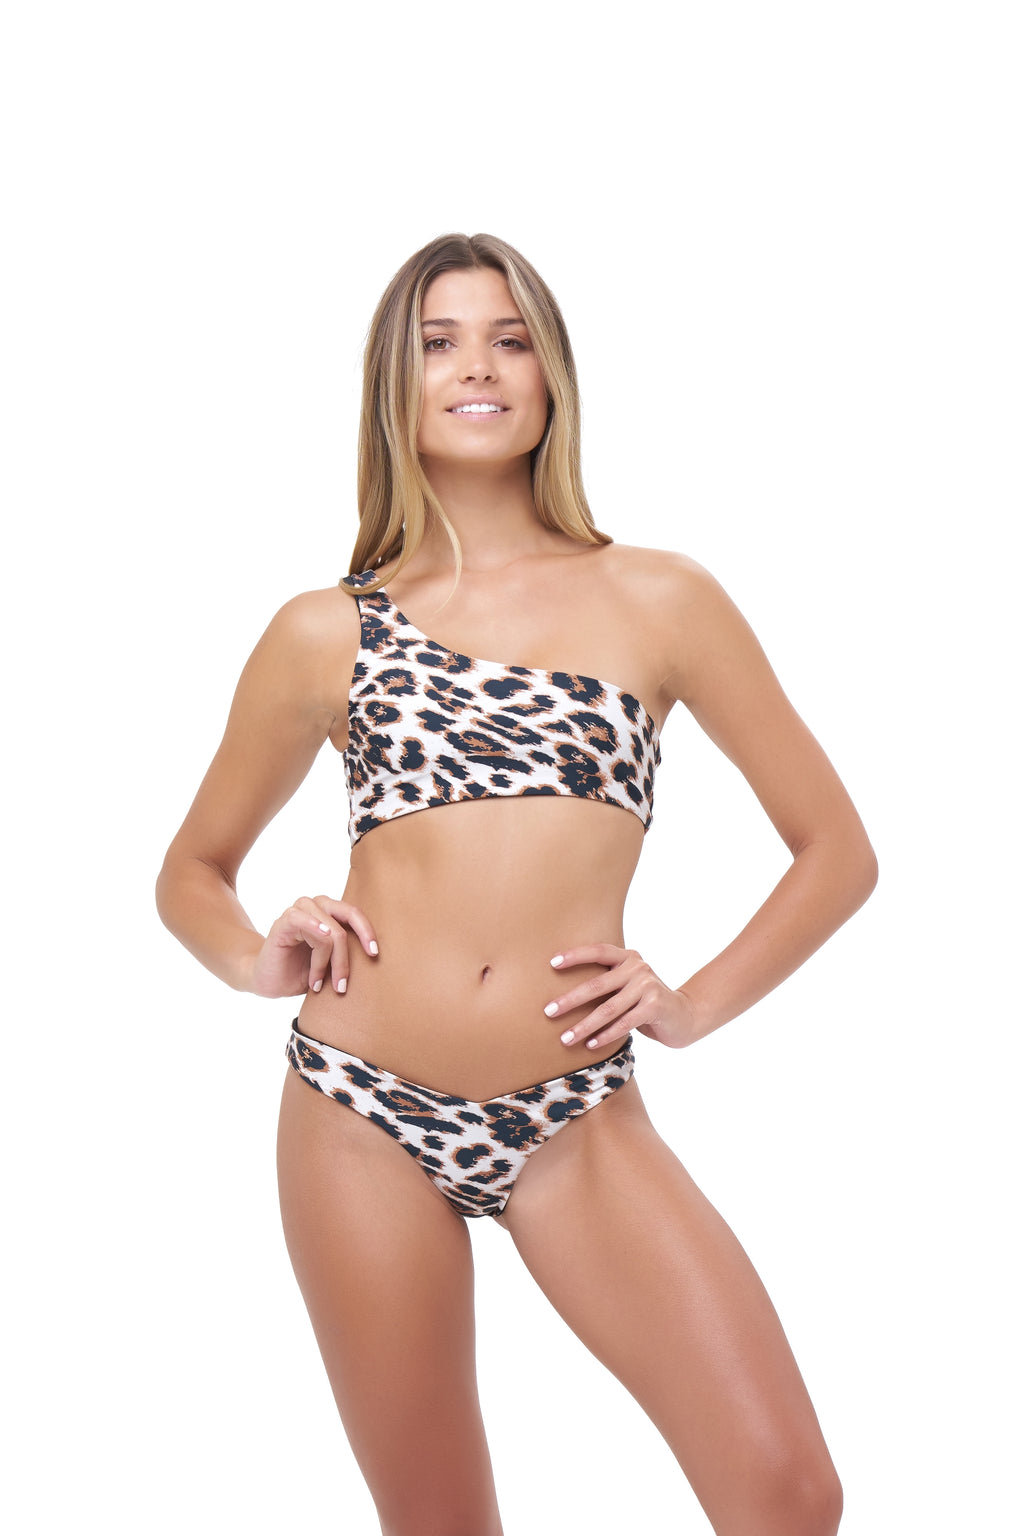 Storm Swimwear - Cinque Terre - One shoulder bikini top in Leopard Print